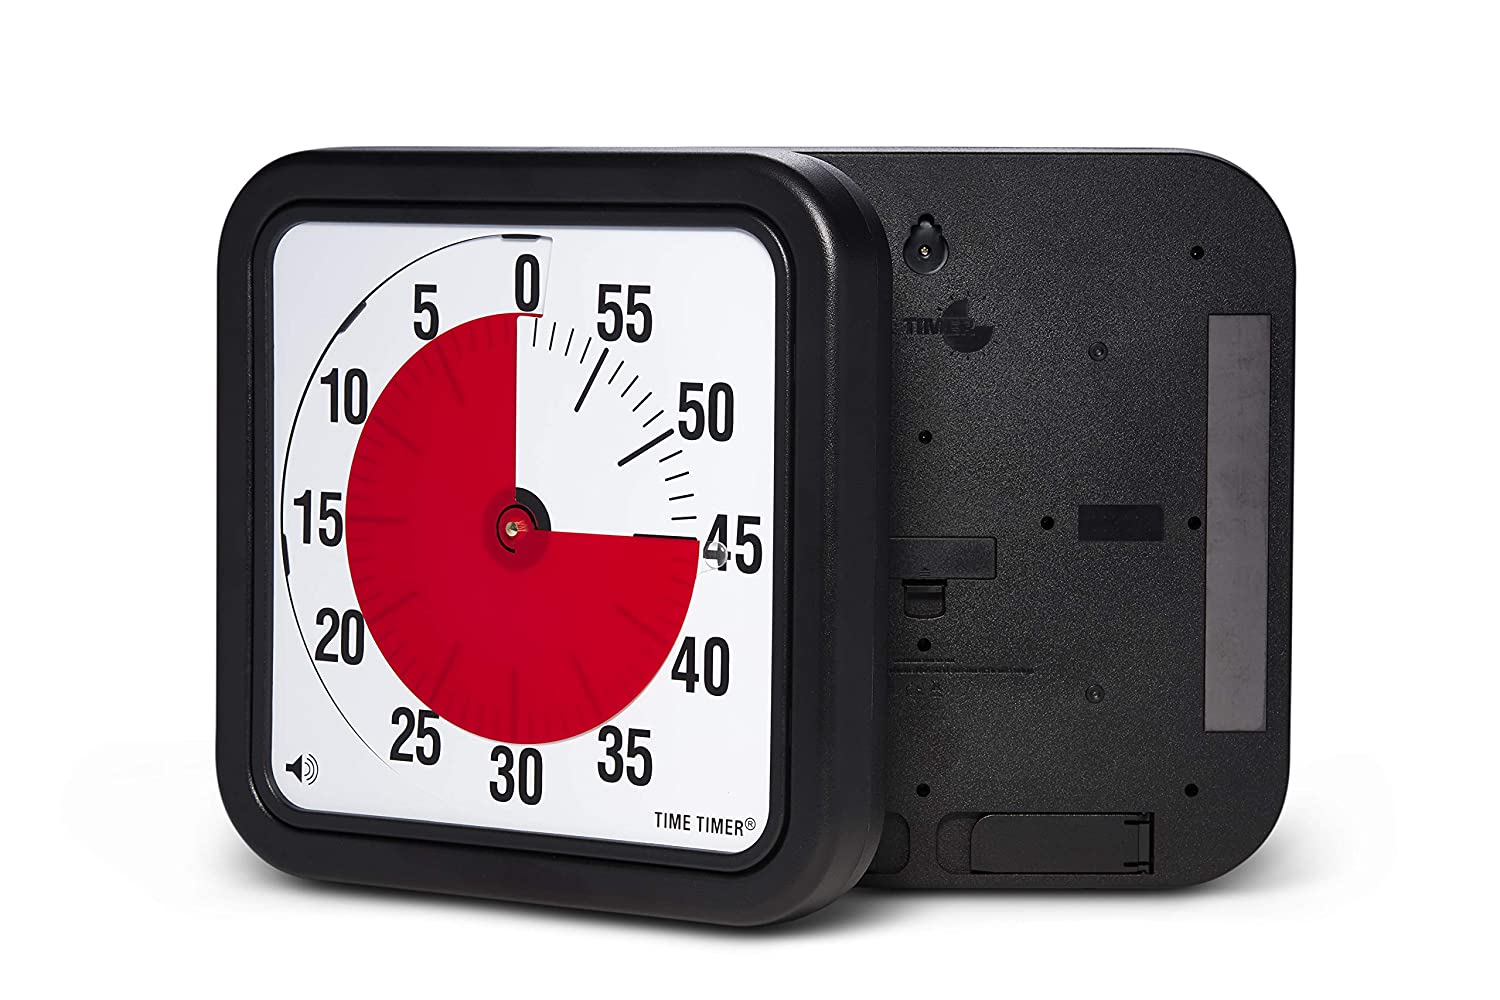 Original 12 inch MAGNETIC, A Visual Countdown 60 Minute Institutional Timer for Classroom, Meetings, Kids, Adults Office, and Homeschooling Study Tool with Silent Operation (Black)